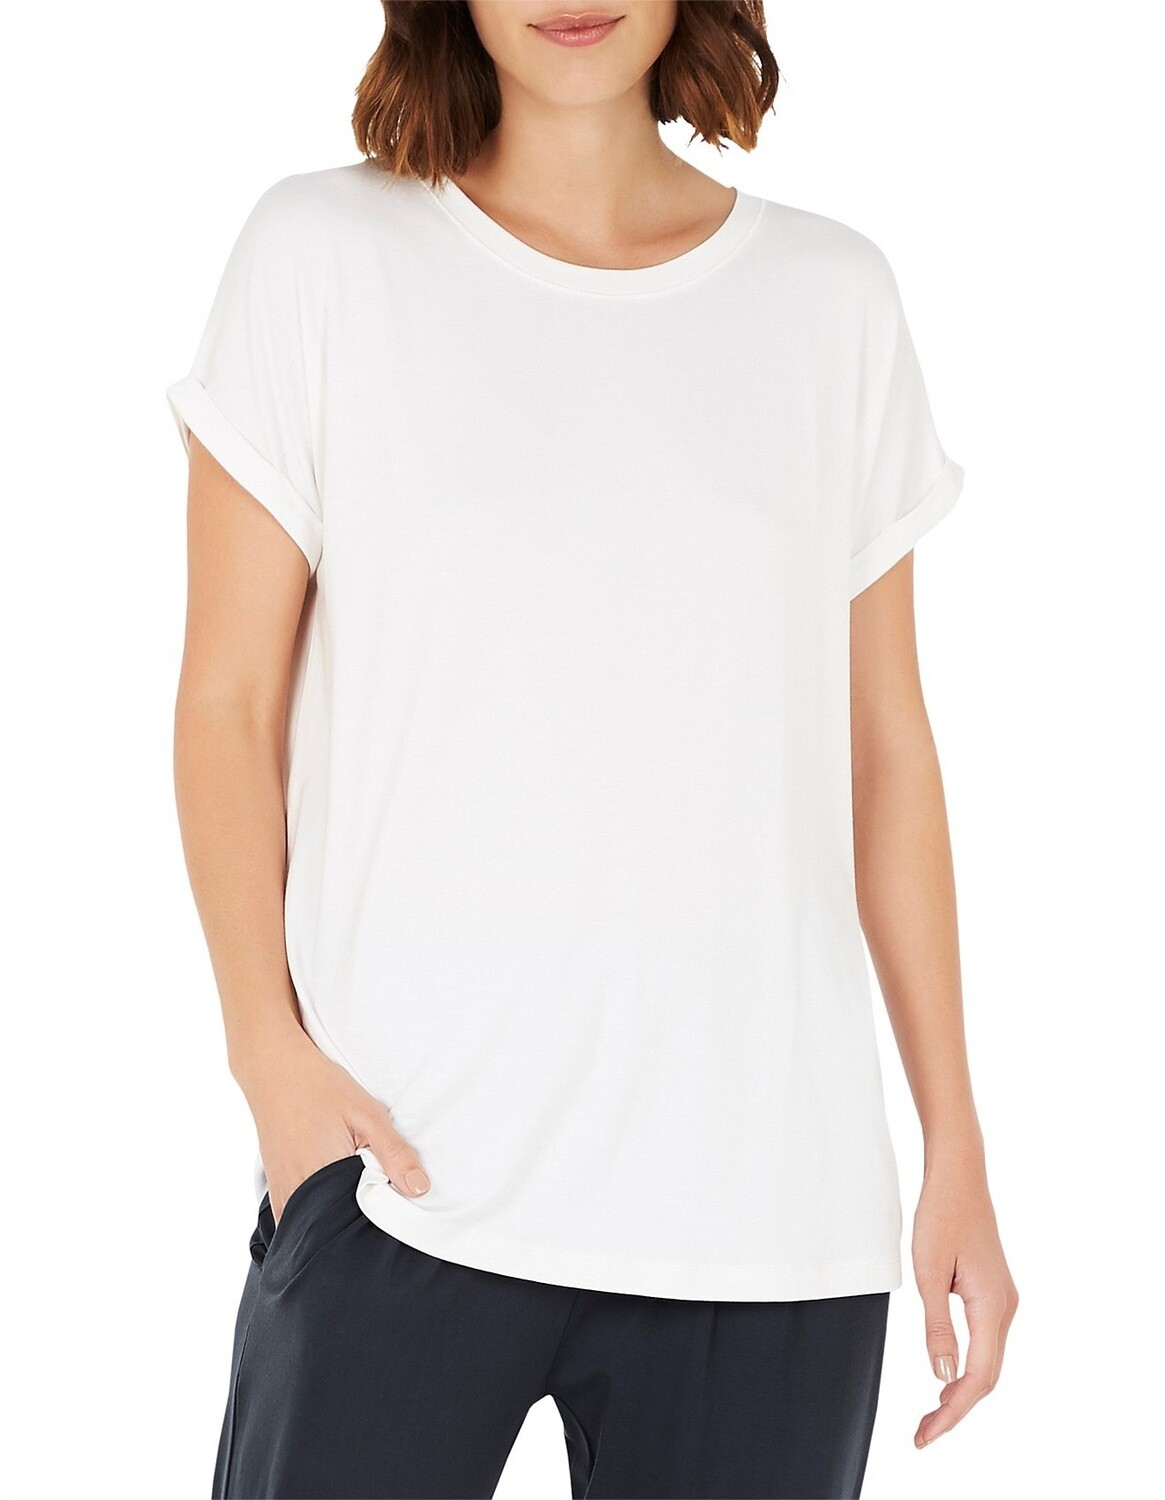 Downtime Lounge Top - Natural White